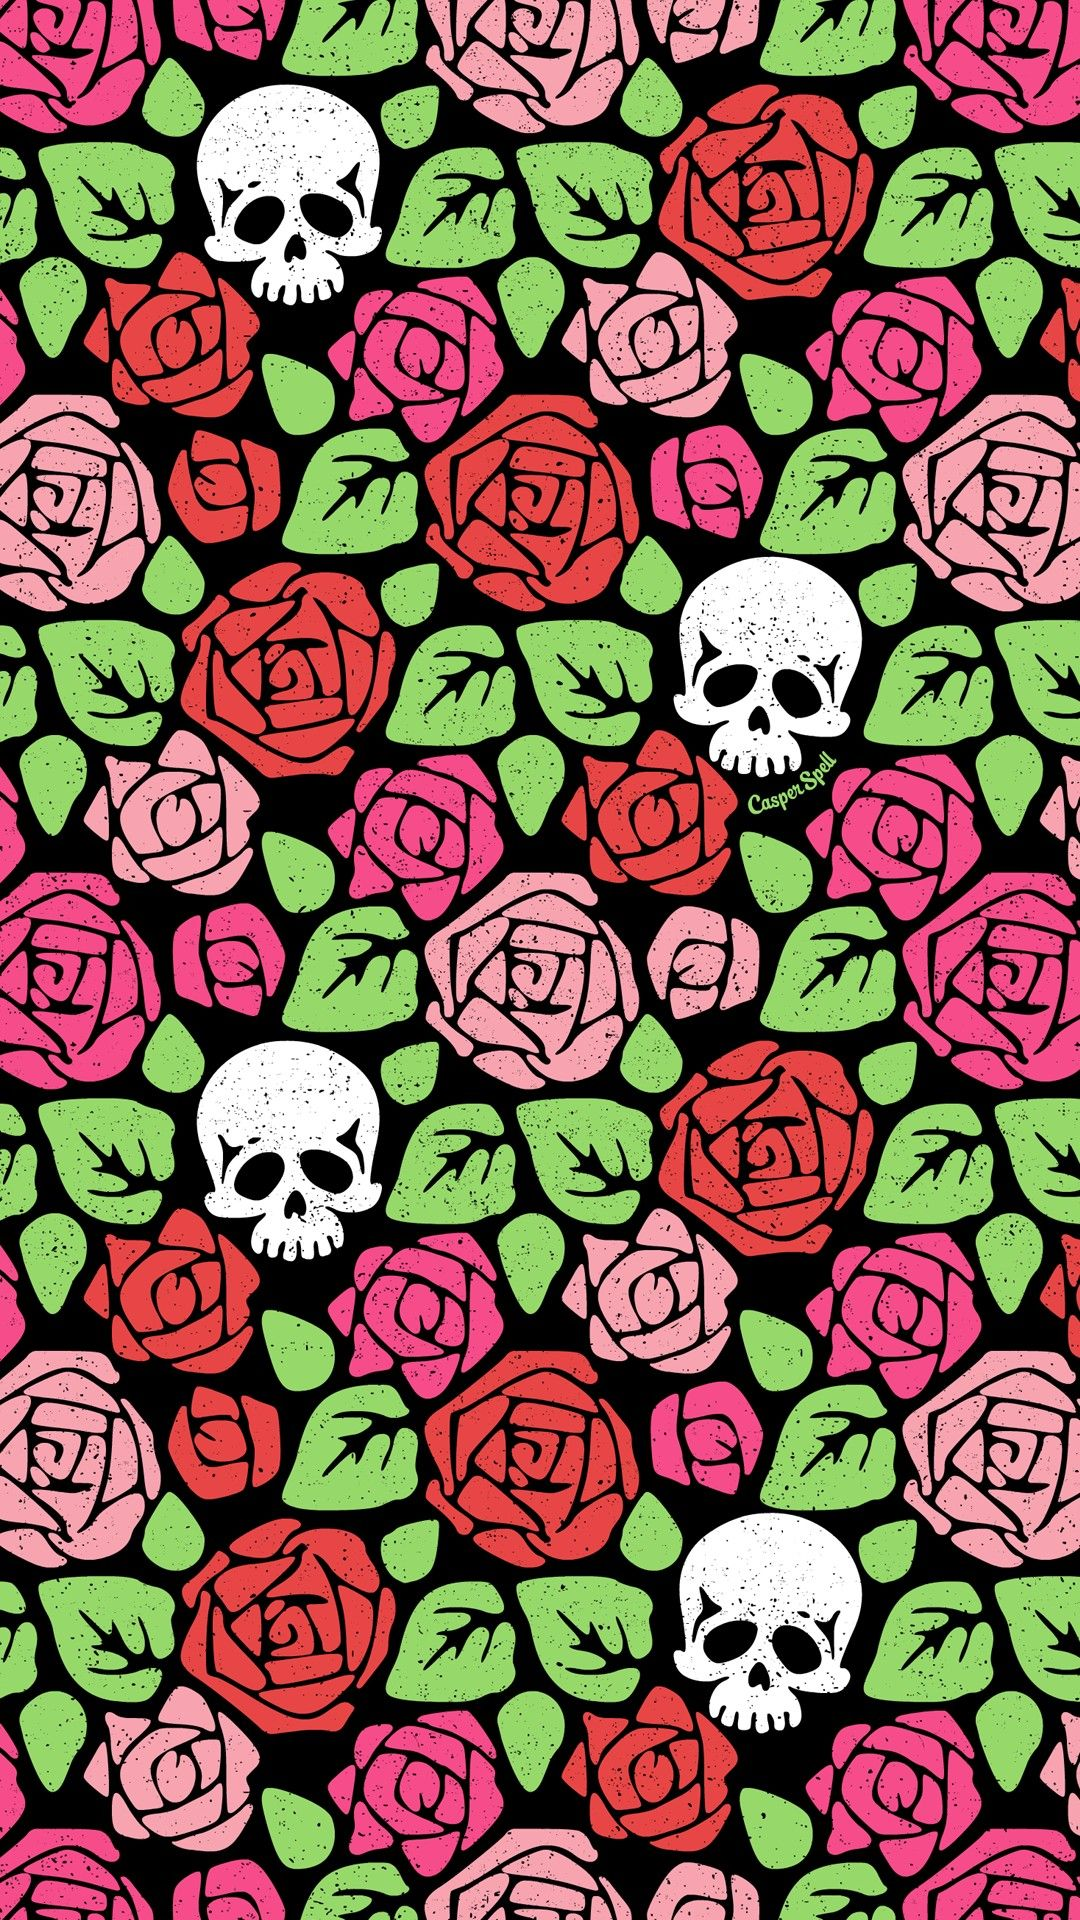 Roses and skulls repeat wallpaper pattern background